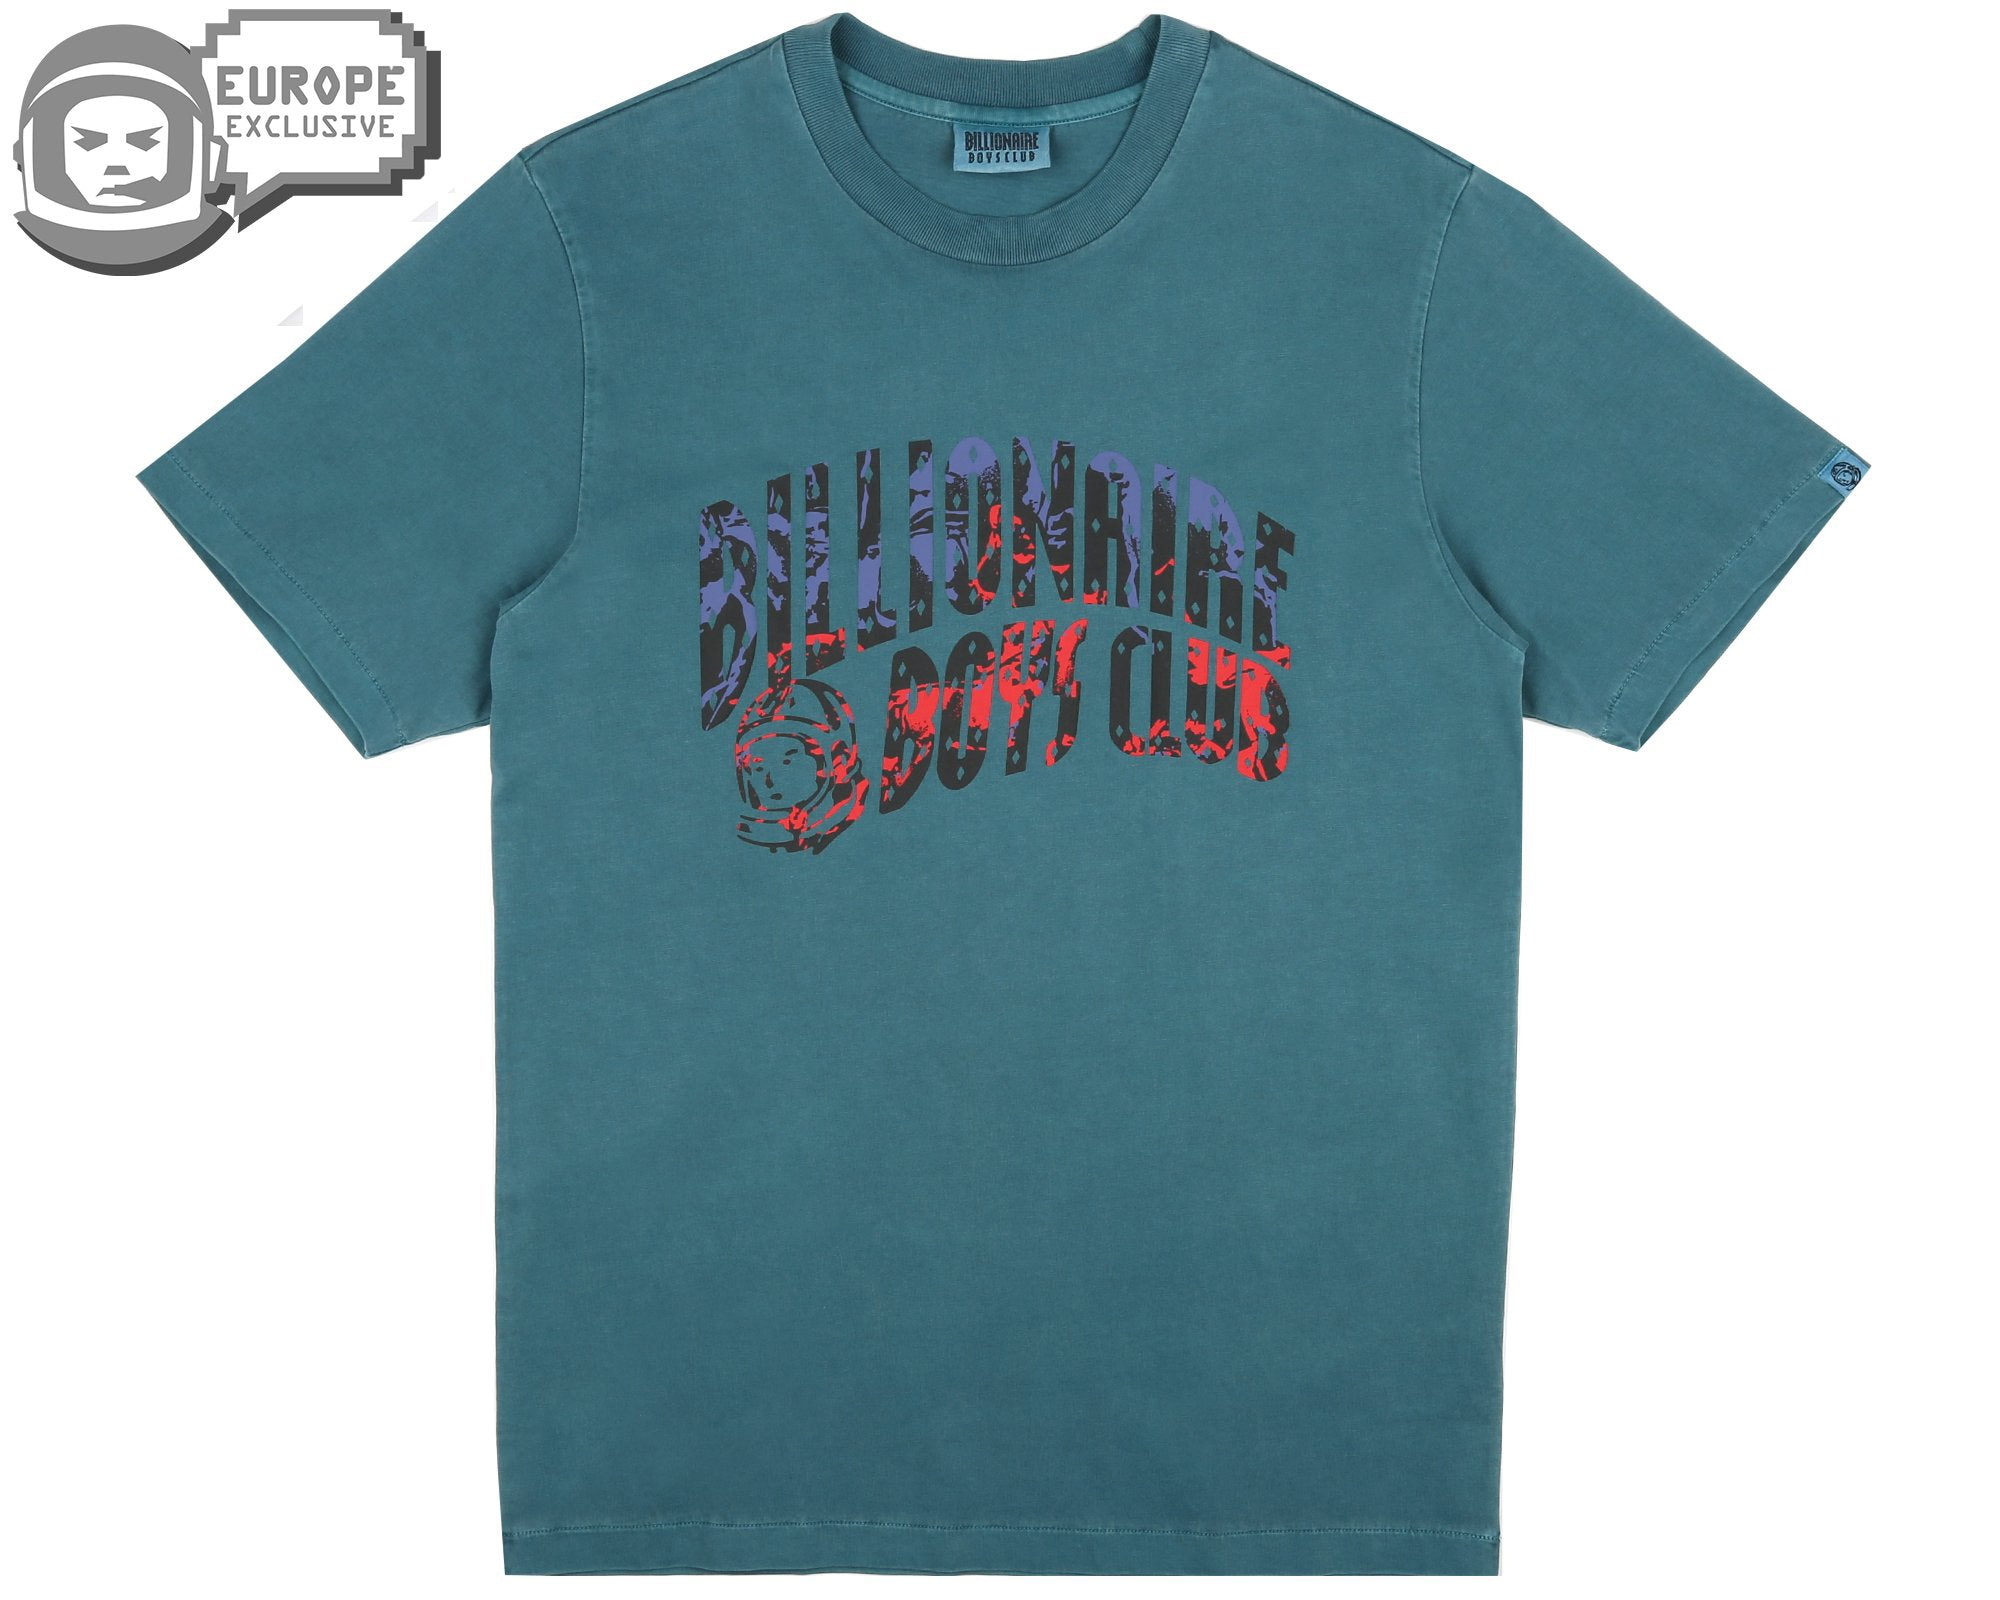 HORSEPOWER ARCH LOGO T-SHIRT - TEAL